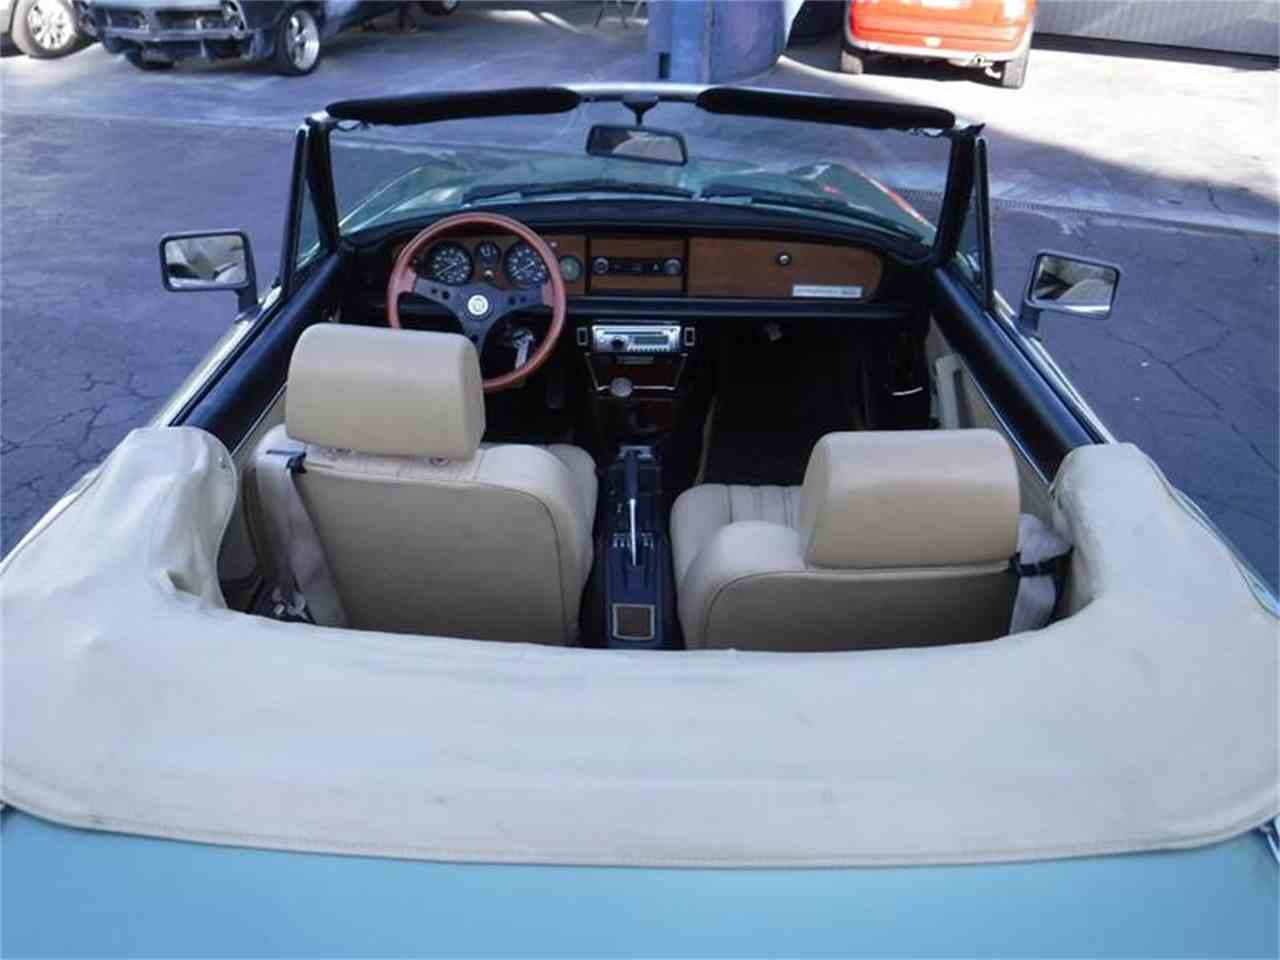 Large Picture of 1980 Fiat 124 located in Thousand Oaks California - $10,995.00 - LGWQ